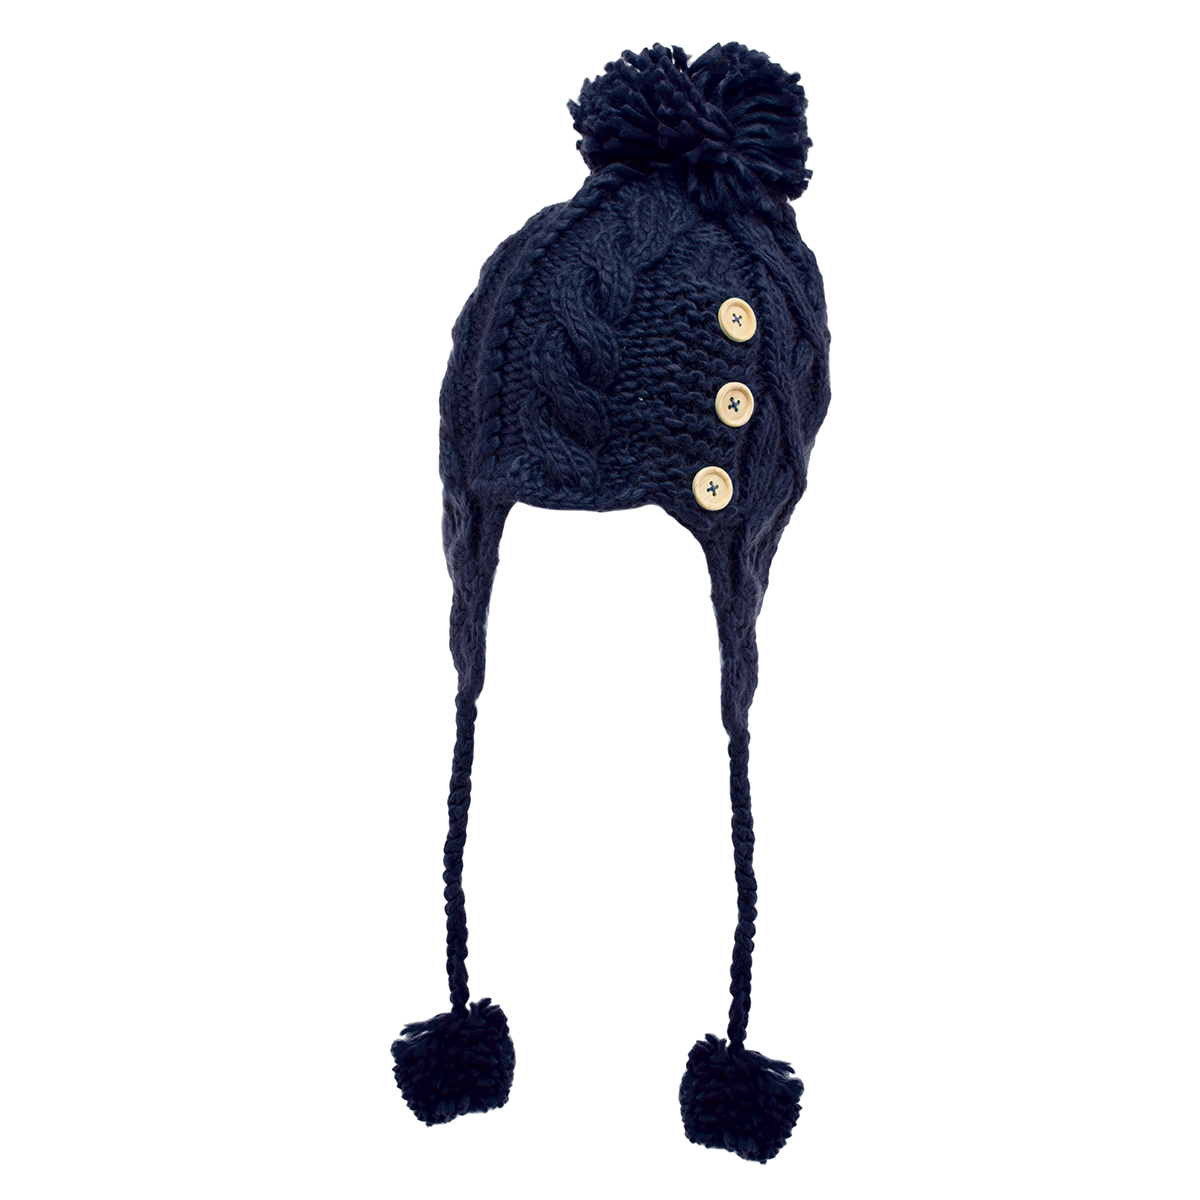 Women's Cable Knitted Winter Beanie Hat Warm Ladies Fashion Pom Cap Soft Earflap